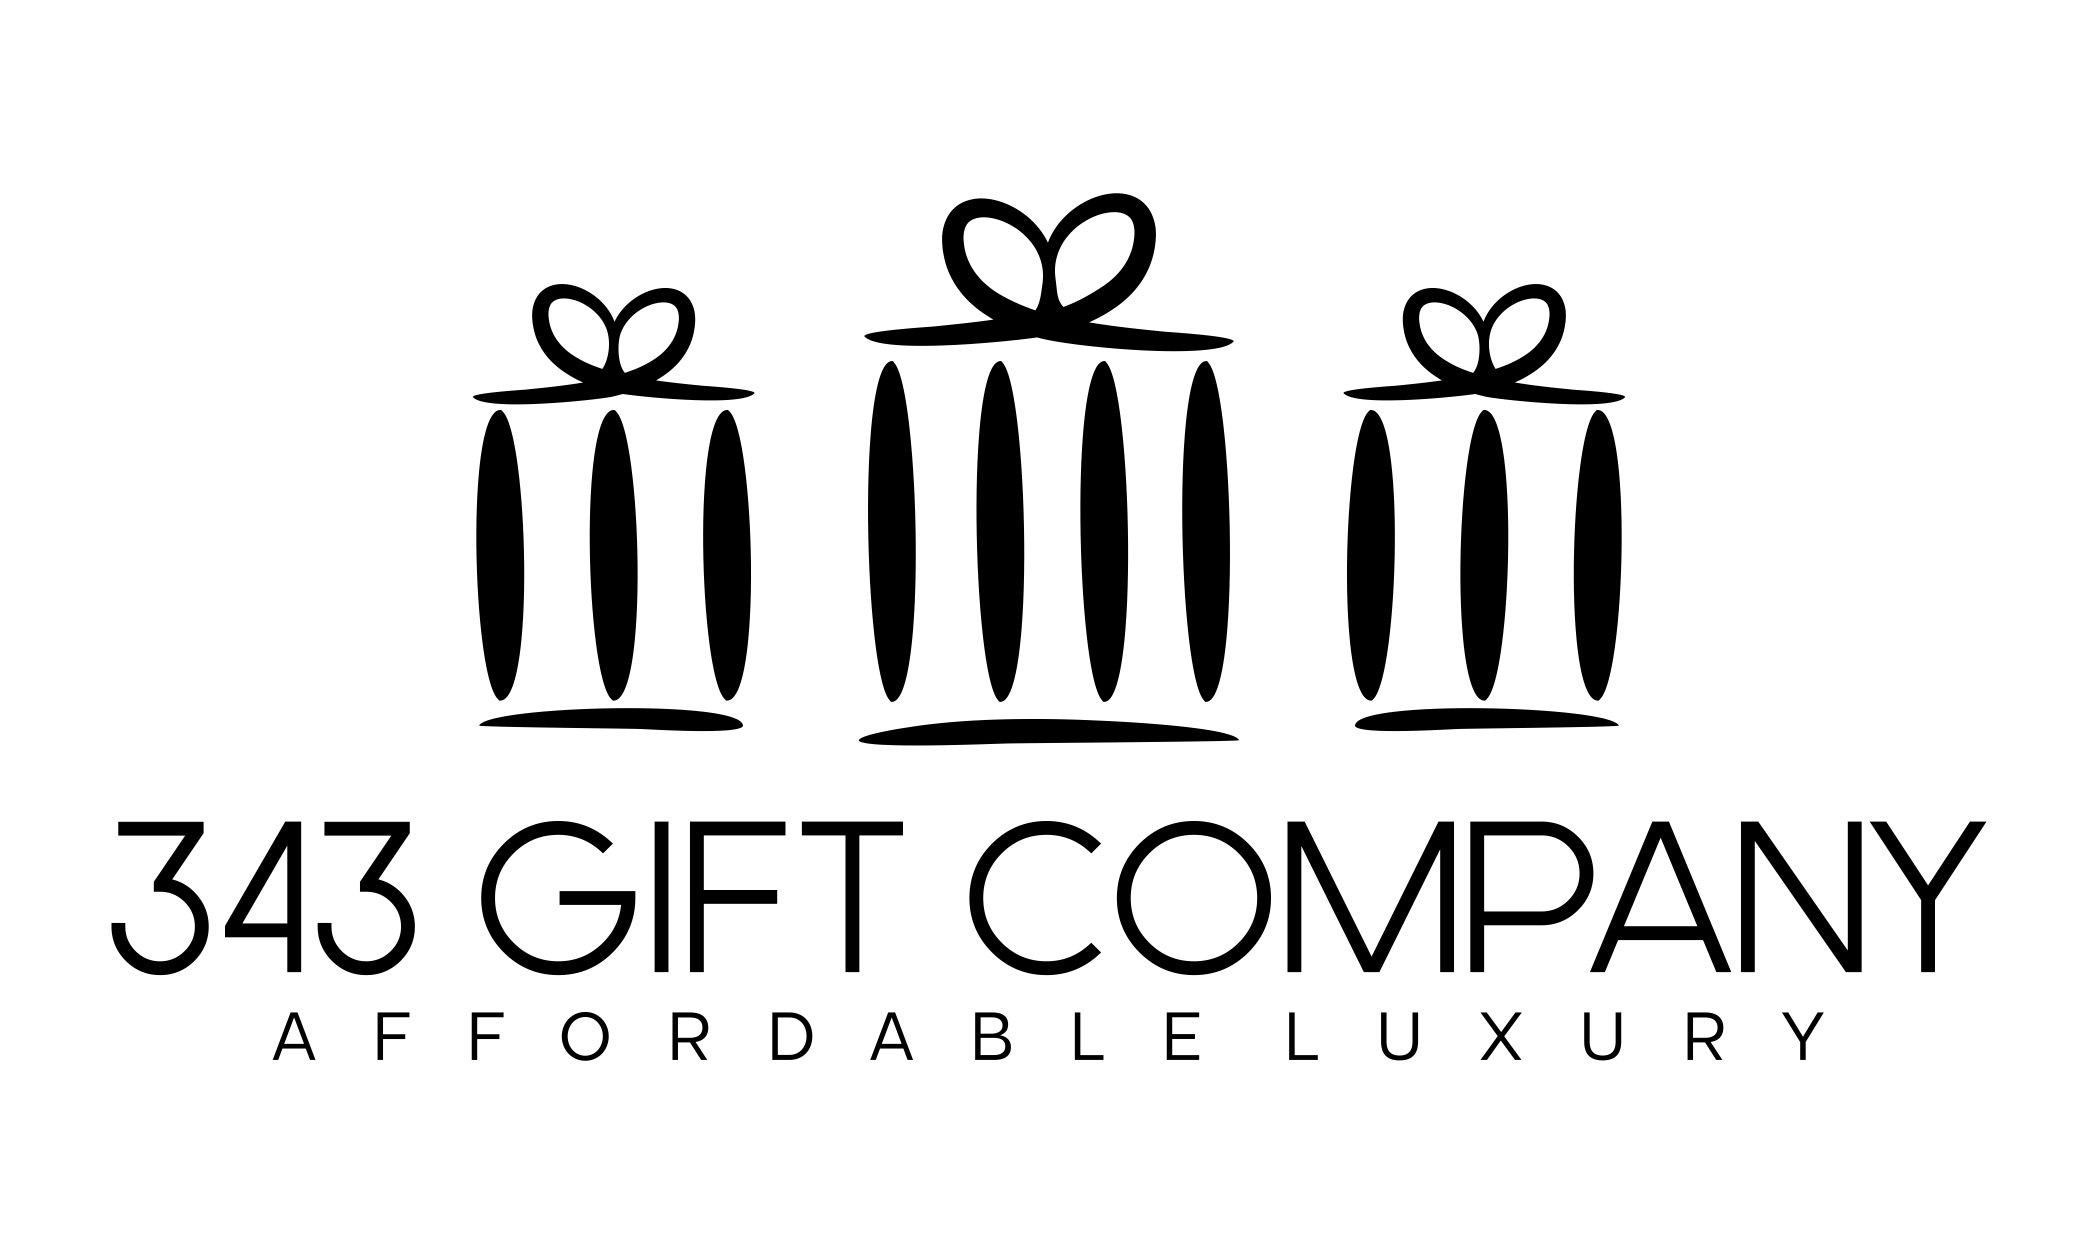 Need a fun & colorful but luxurious logo for new online commerce gift business